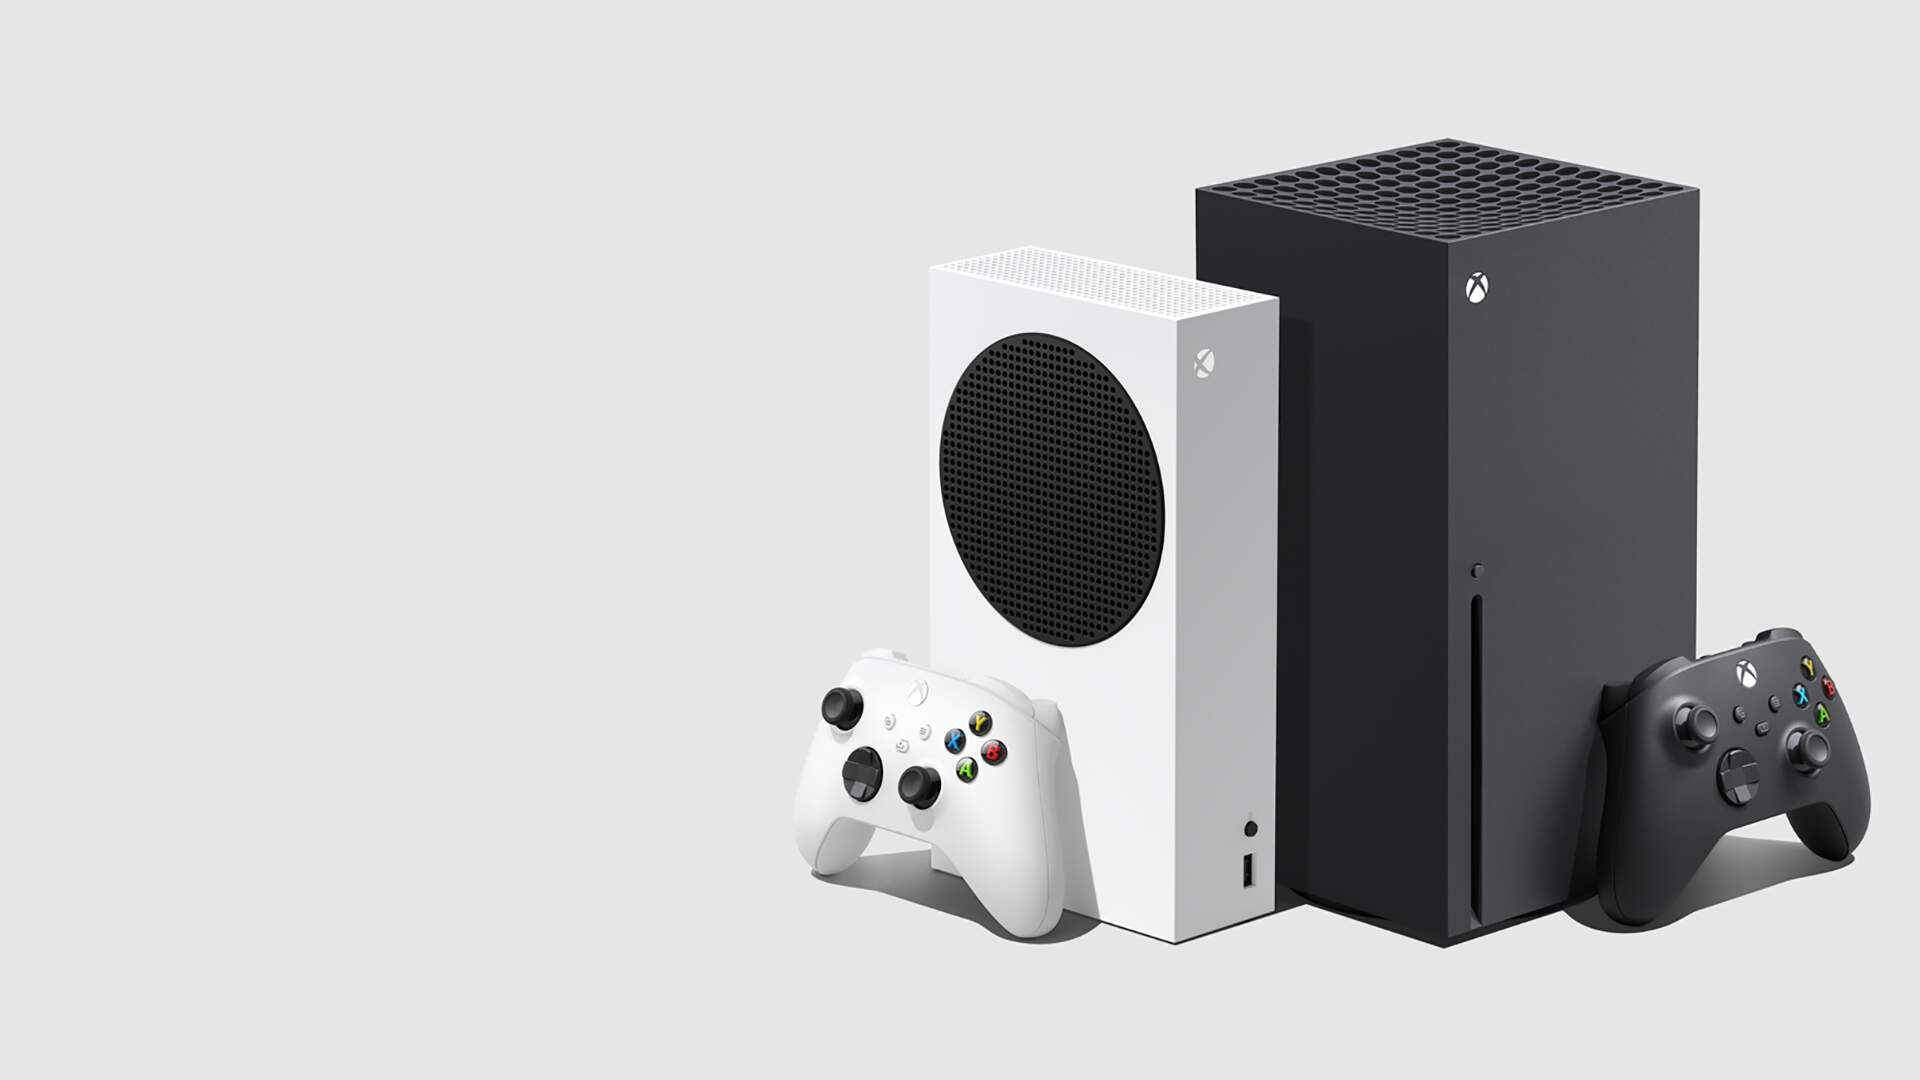 When Will It Actually be Possible to Buy an Xbox Series X or PS5?